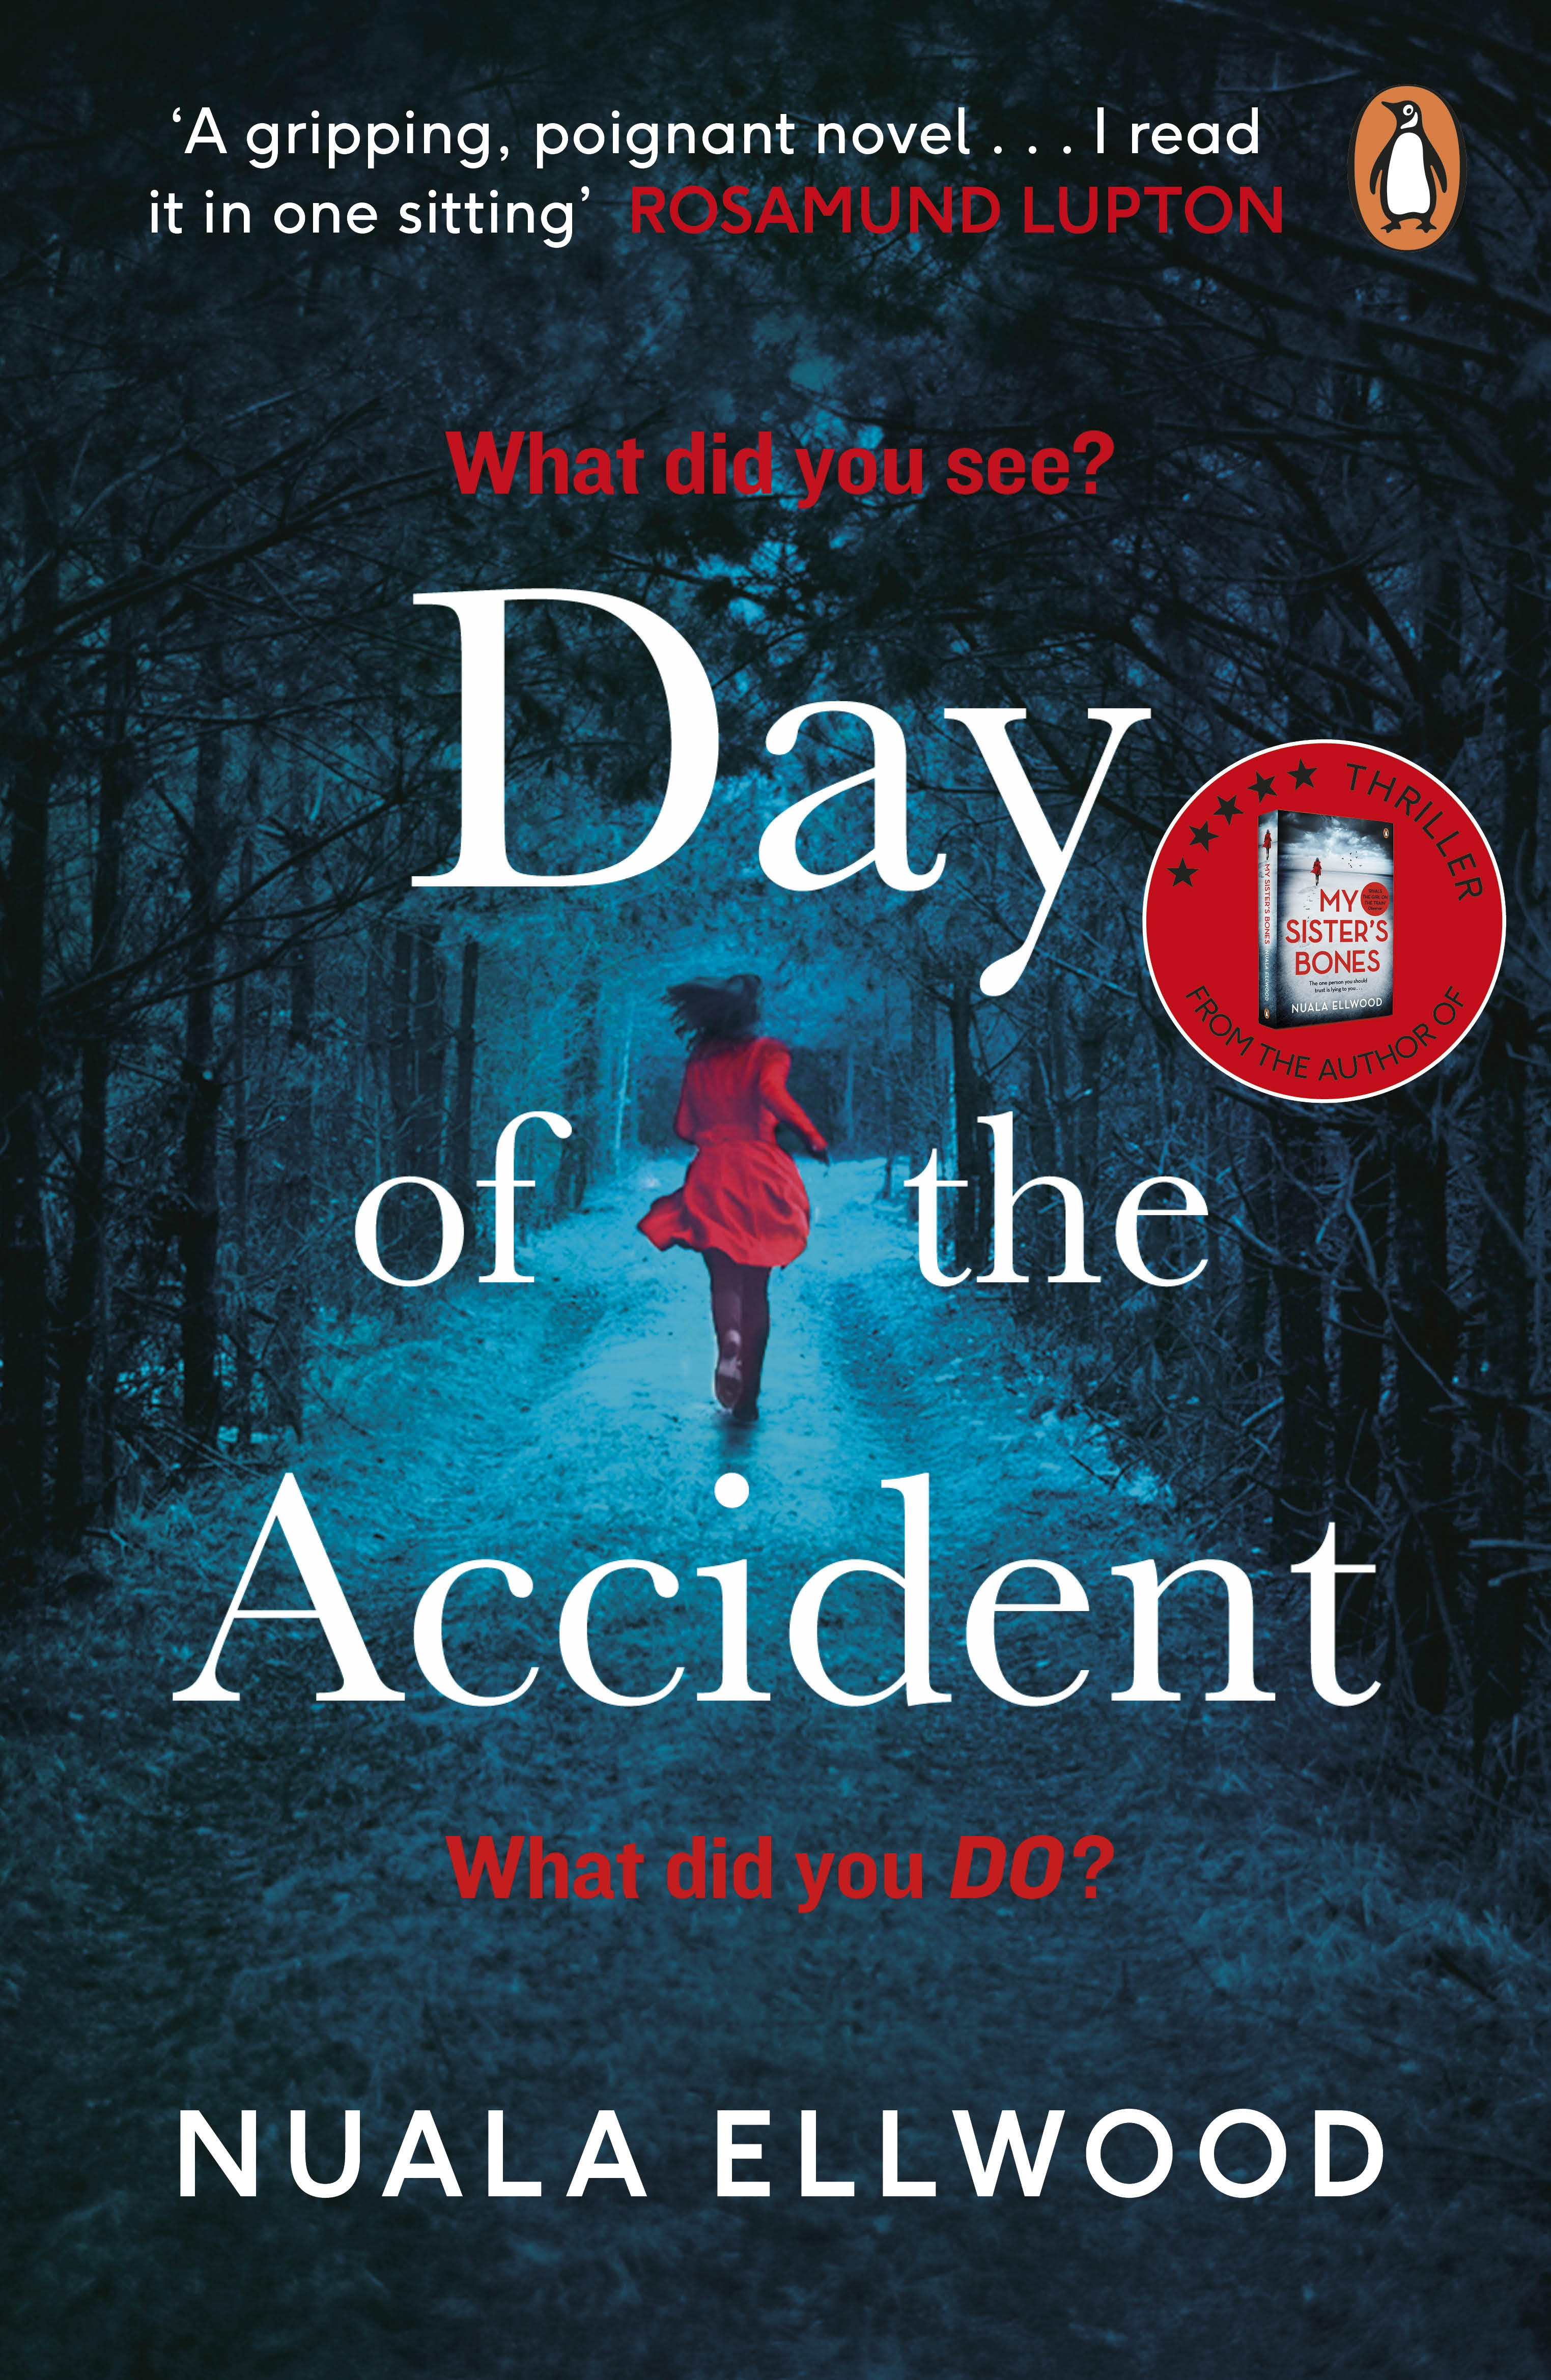 Day of the accident cover